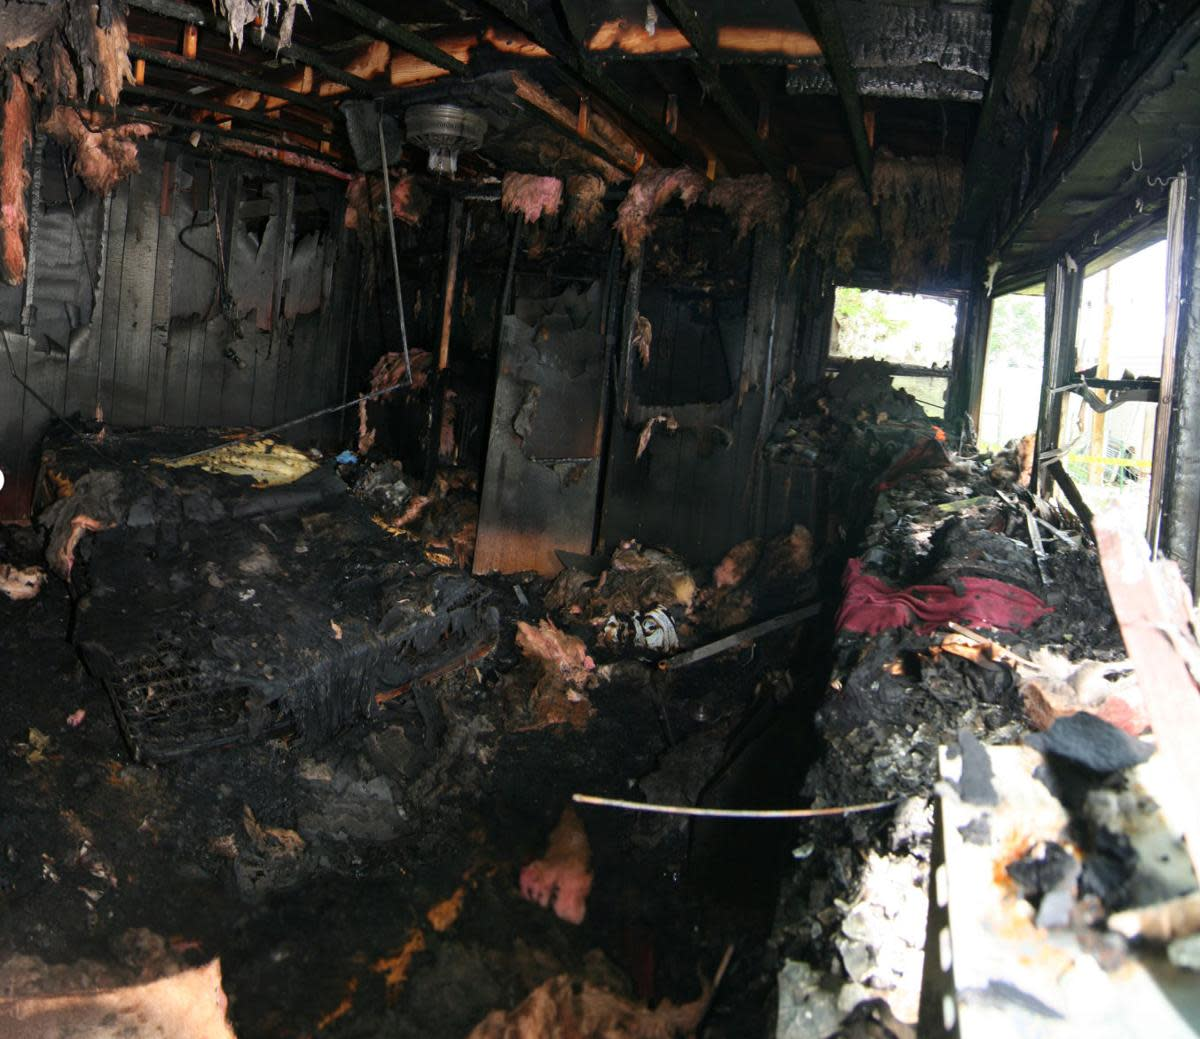 Inside of the trailer after the fire.